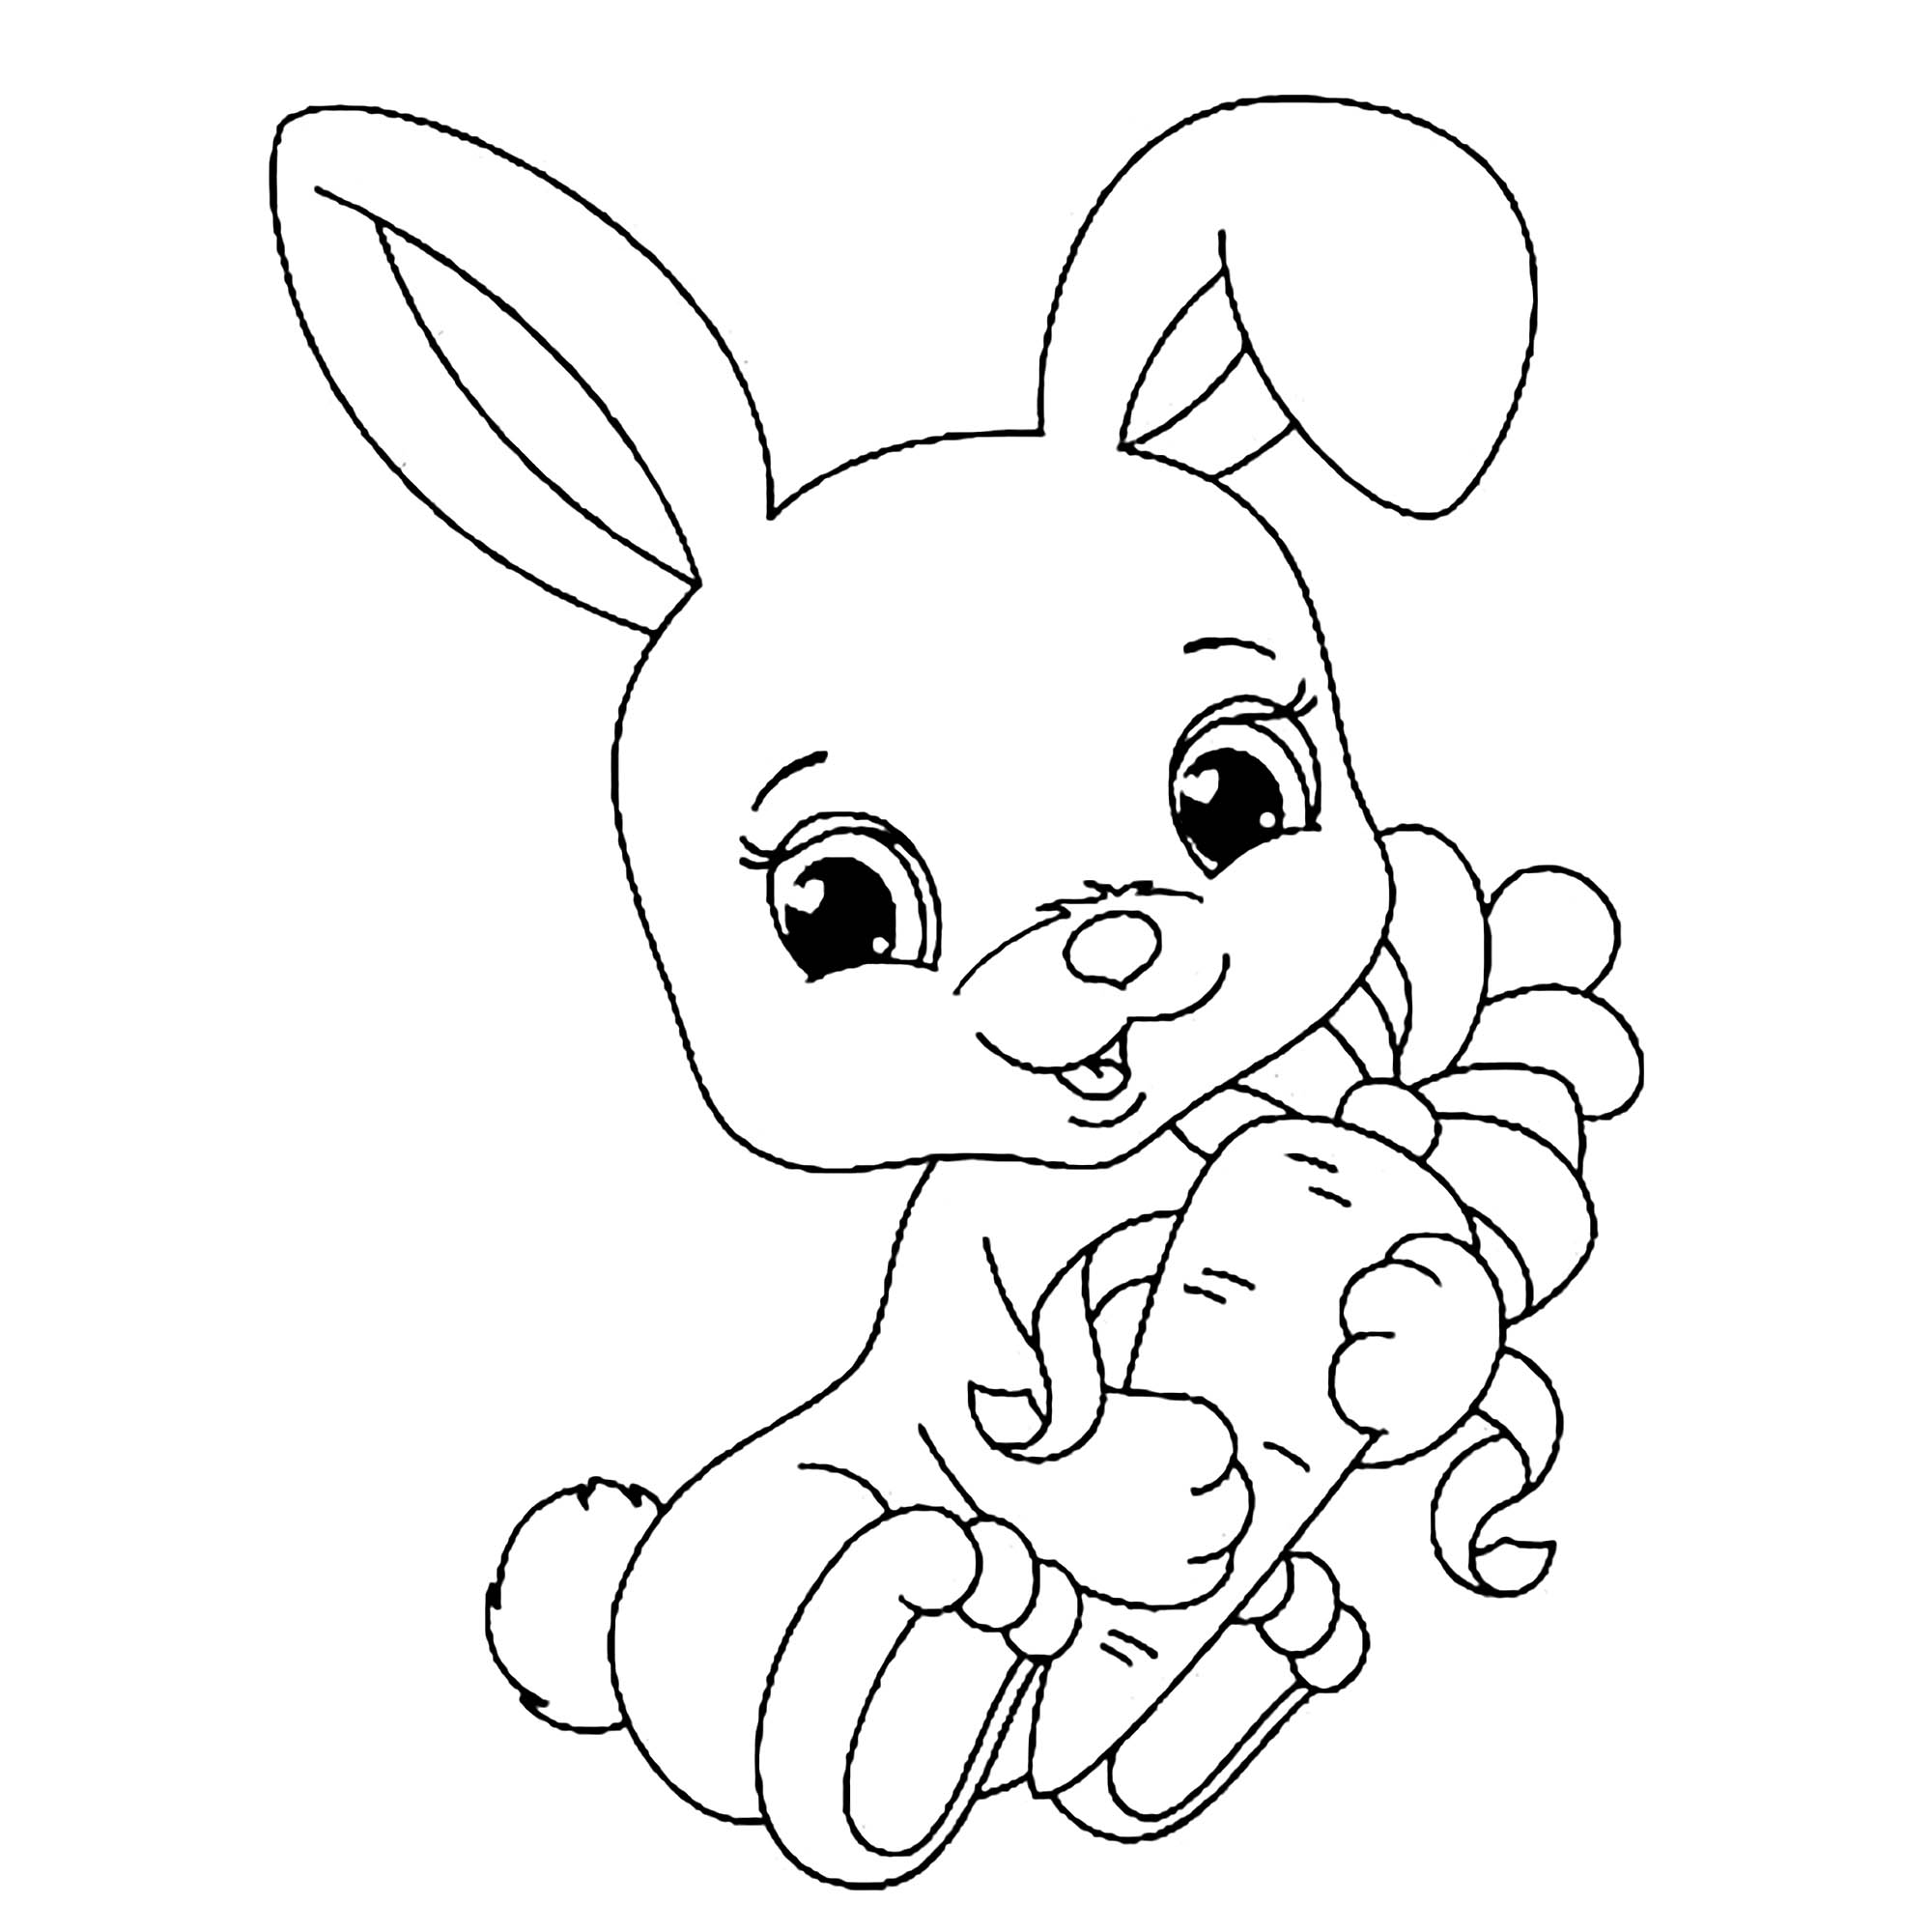 bunny coloring book rabbit to download for free rabbit kids coloring pages book coloring bunny